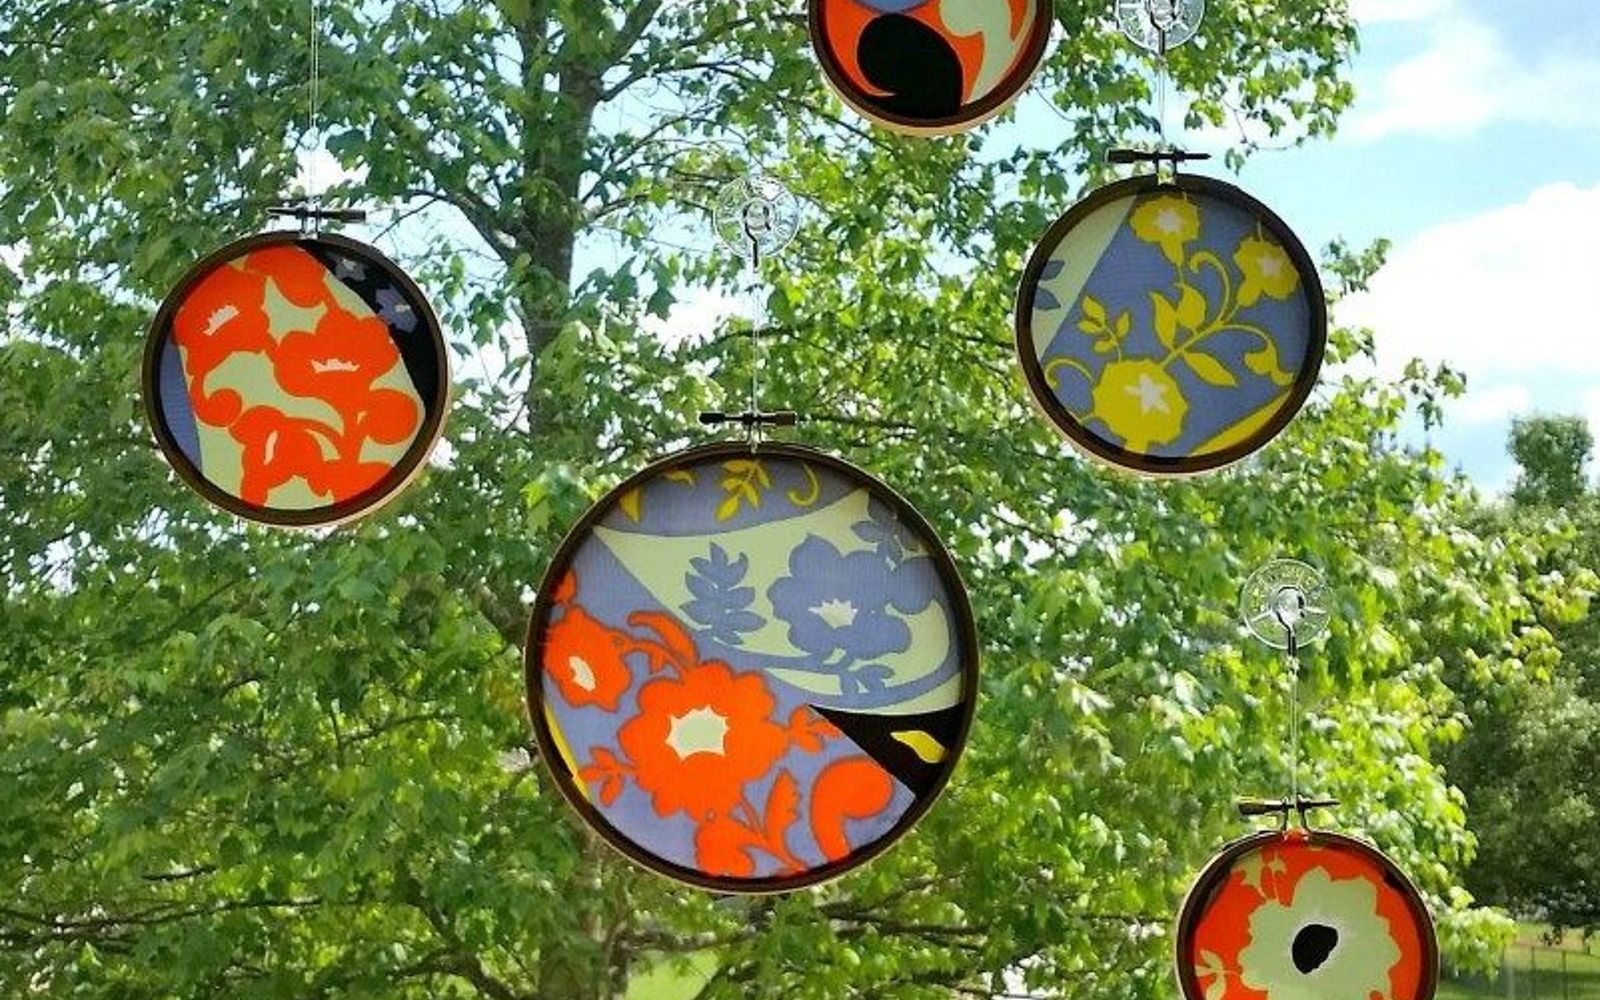 s 13 stunning vintage fabric ideas that ll send you to the thrift store, crafts, repurposing upcycling, reupholster, Vintage Silk Scarf into Sun Catcher